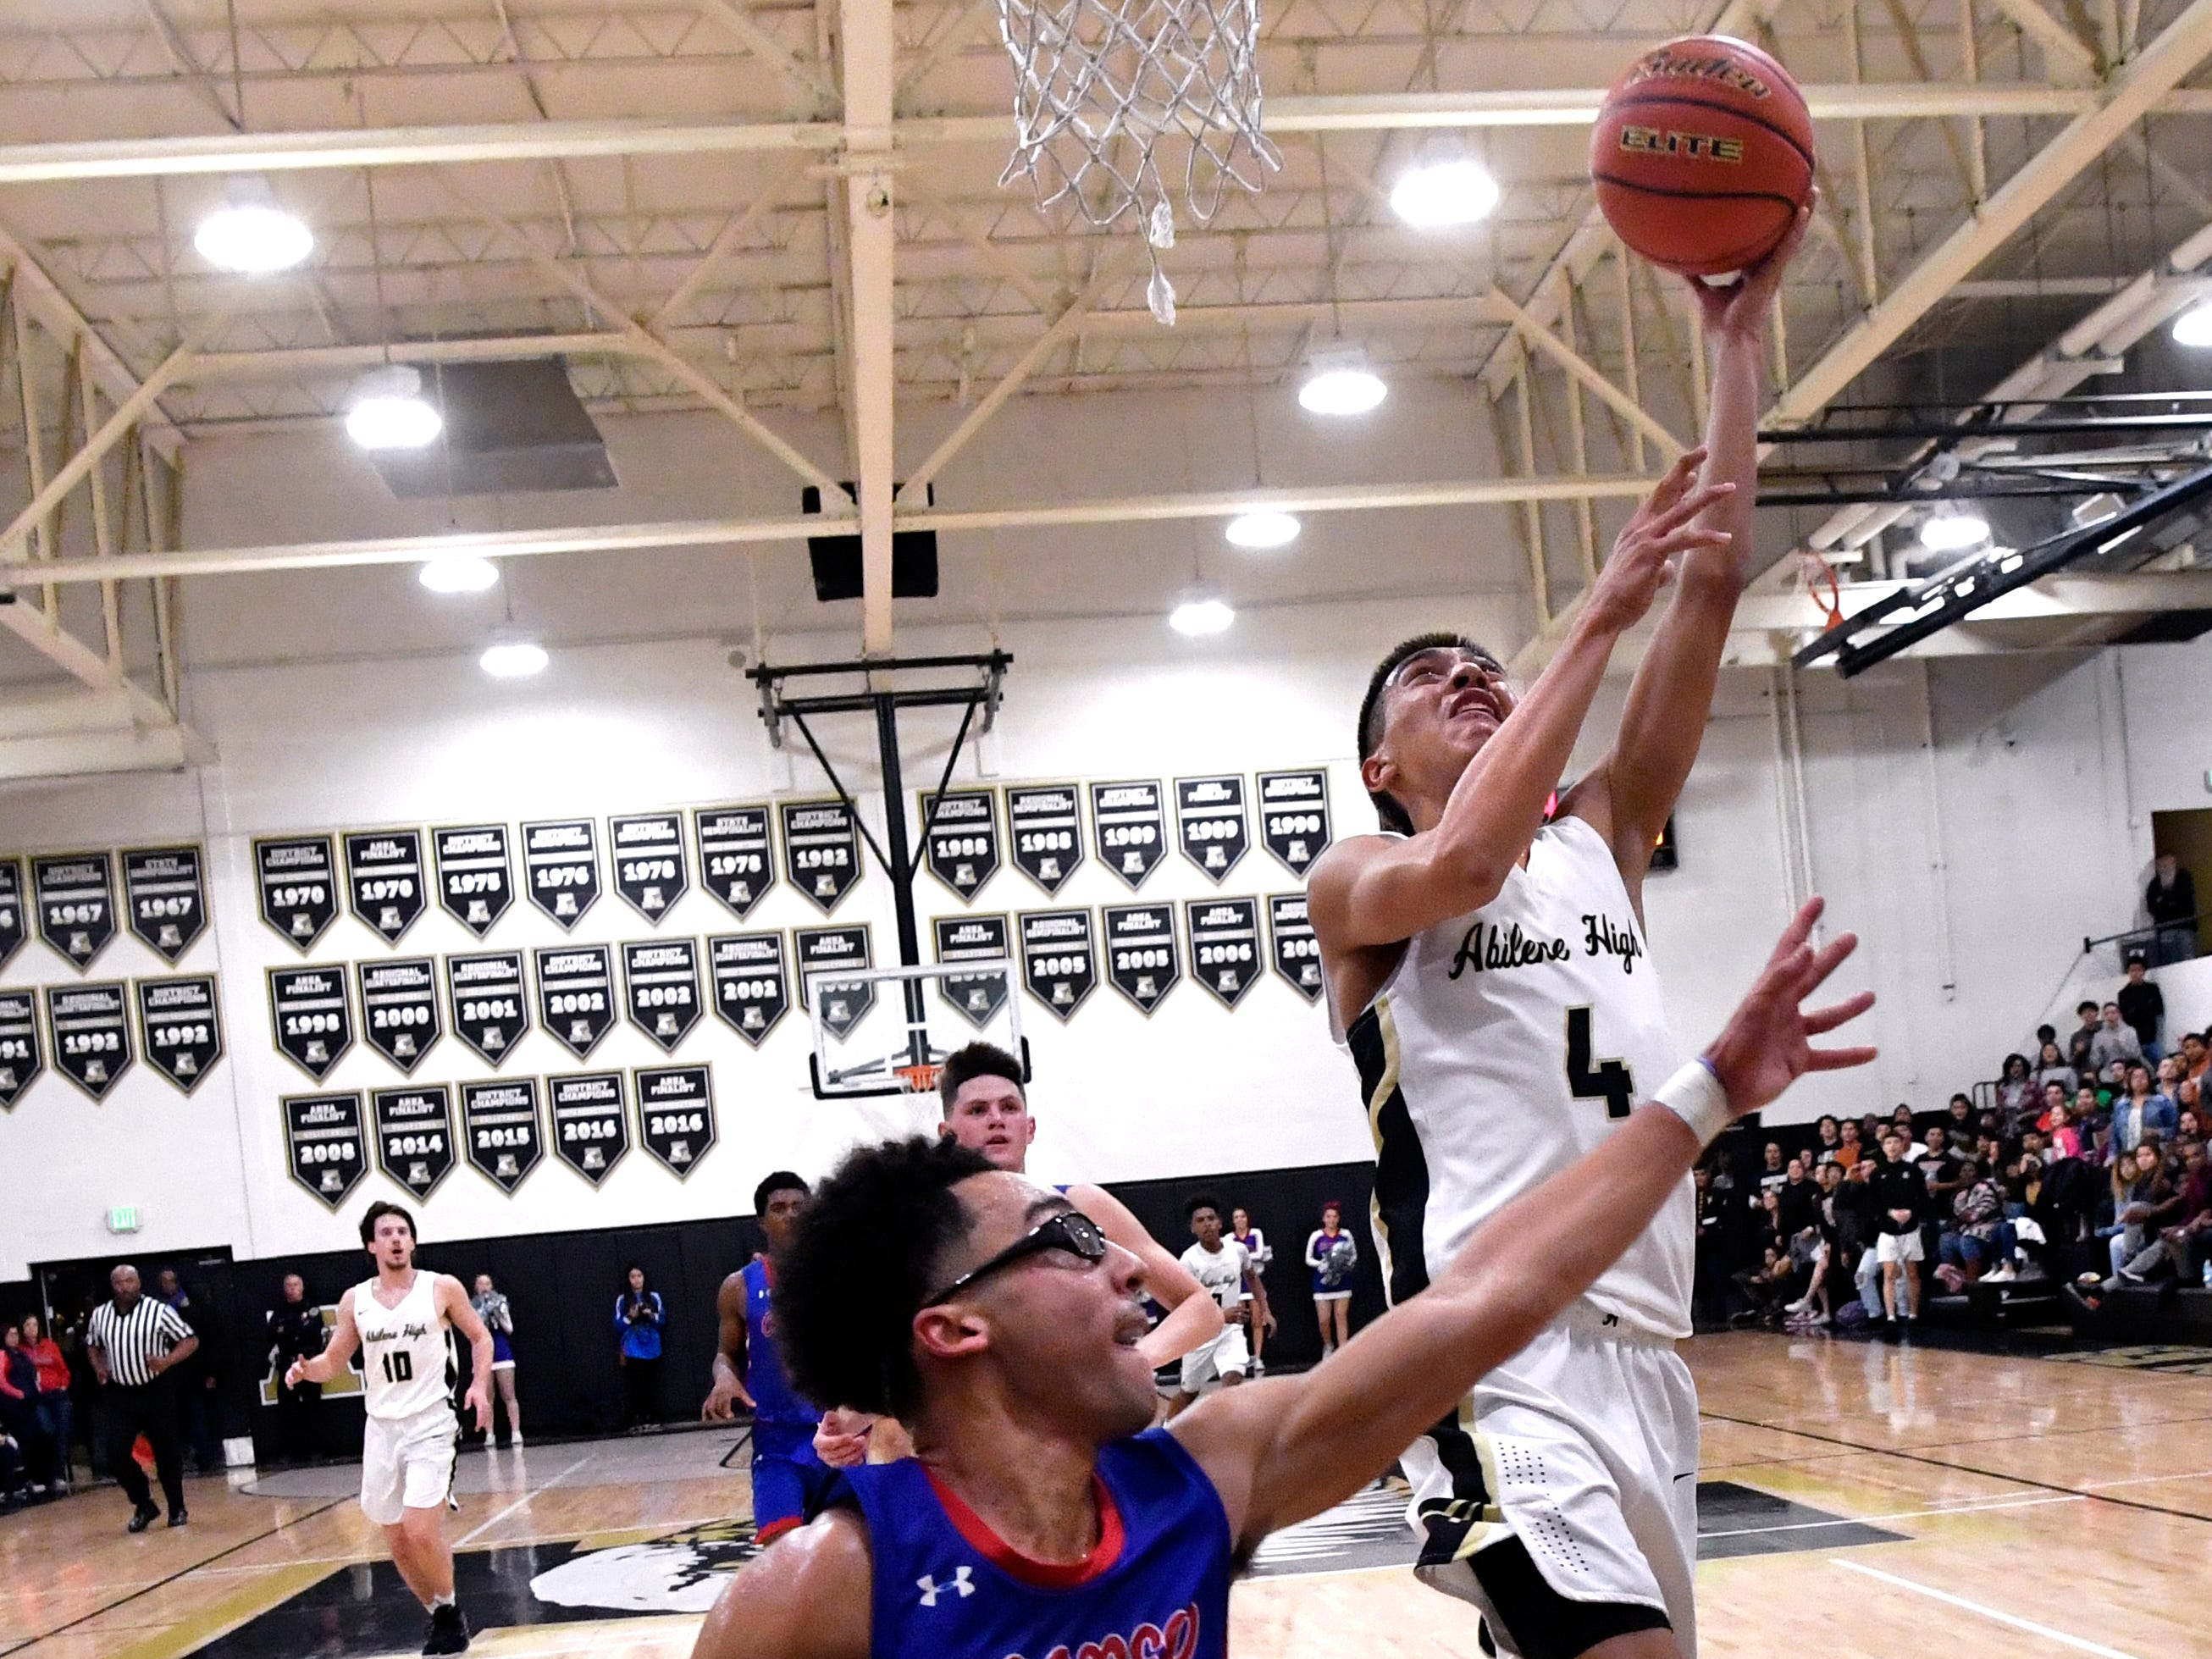 Eagles guard Jojo Escobedo goes for a layup over Cooper guard Ben Thompson during Friday's crosstown basketball game at Eagle Gym Dec. 14, 2018. Final score was 63-52, Abilene High.